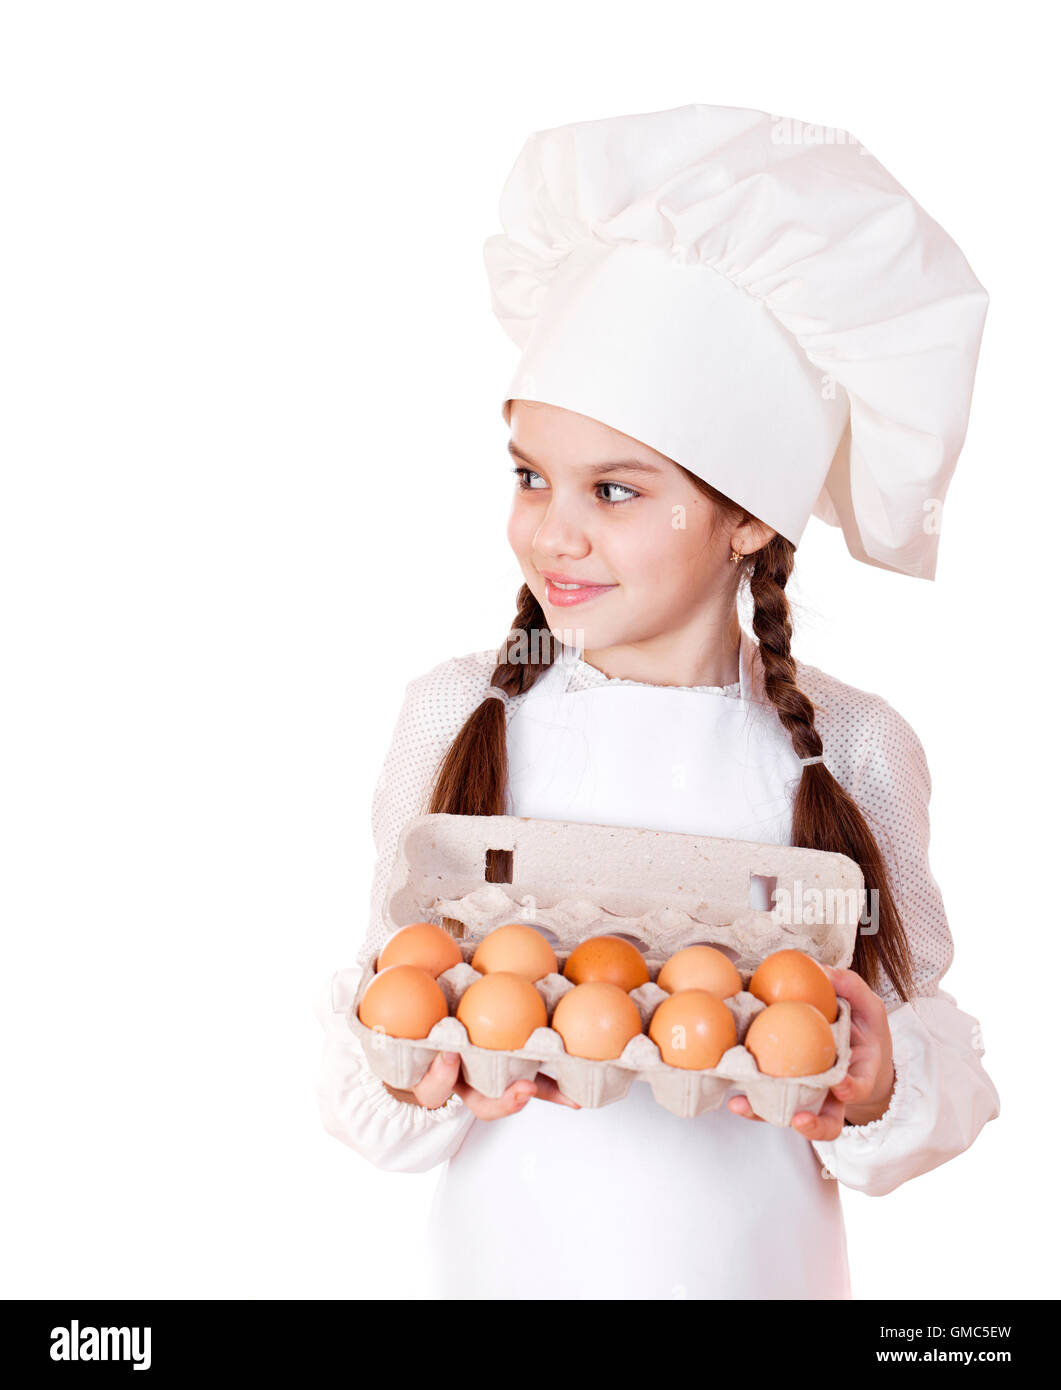 White apron food - Portrait Of A Little Girl In A White Apron Holding Box Of Raw Eggs Isolated On White Background